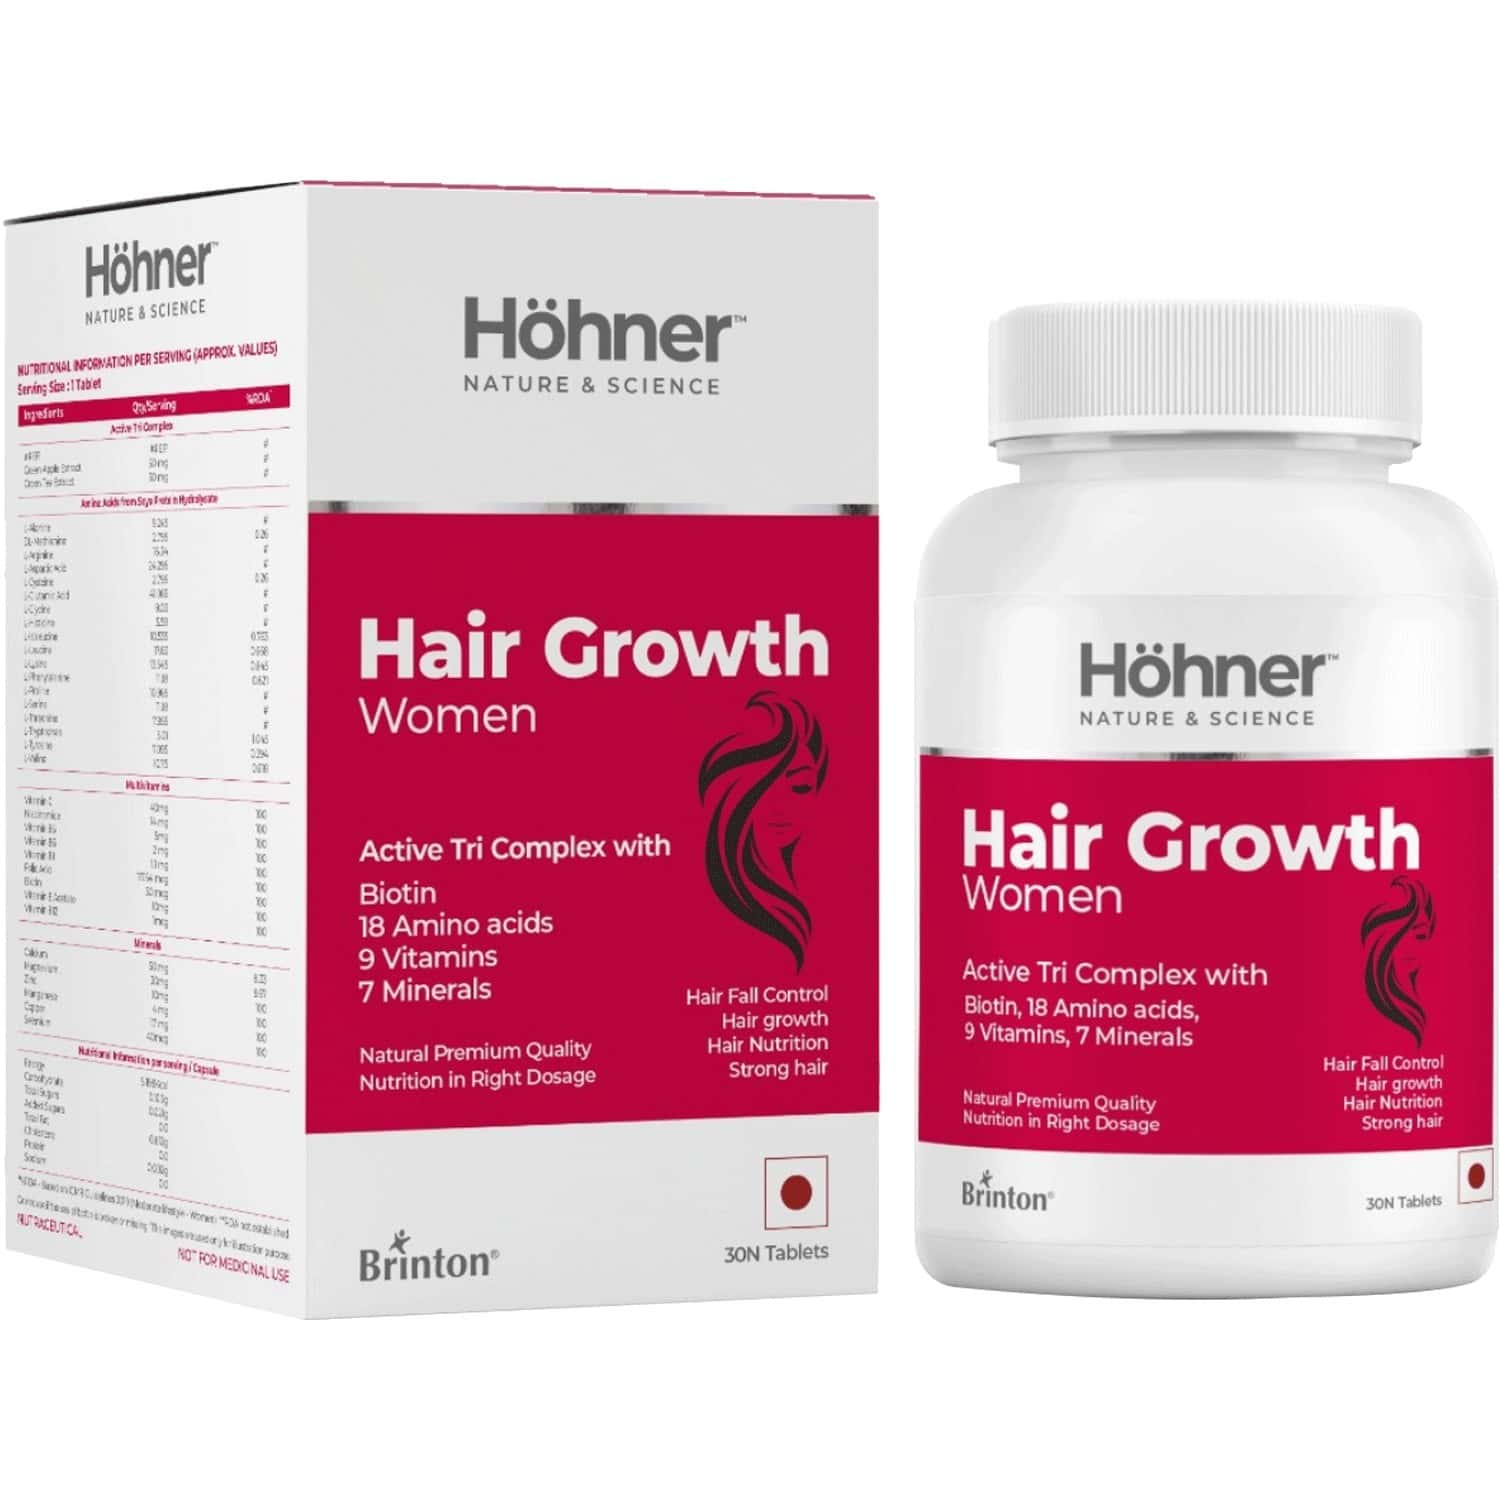 Hohner Hair Growth Women With Biotin, Amino Acids And Phyto-actives Hair Growth For Women 60 Tablet